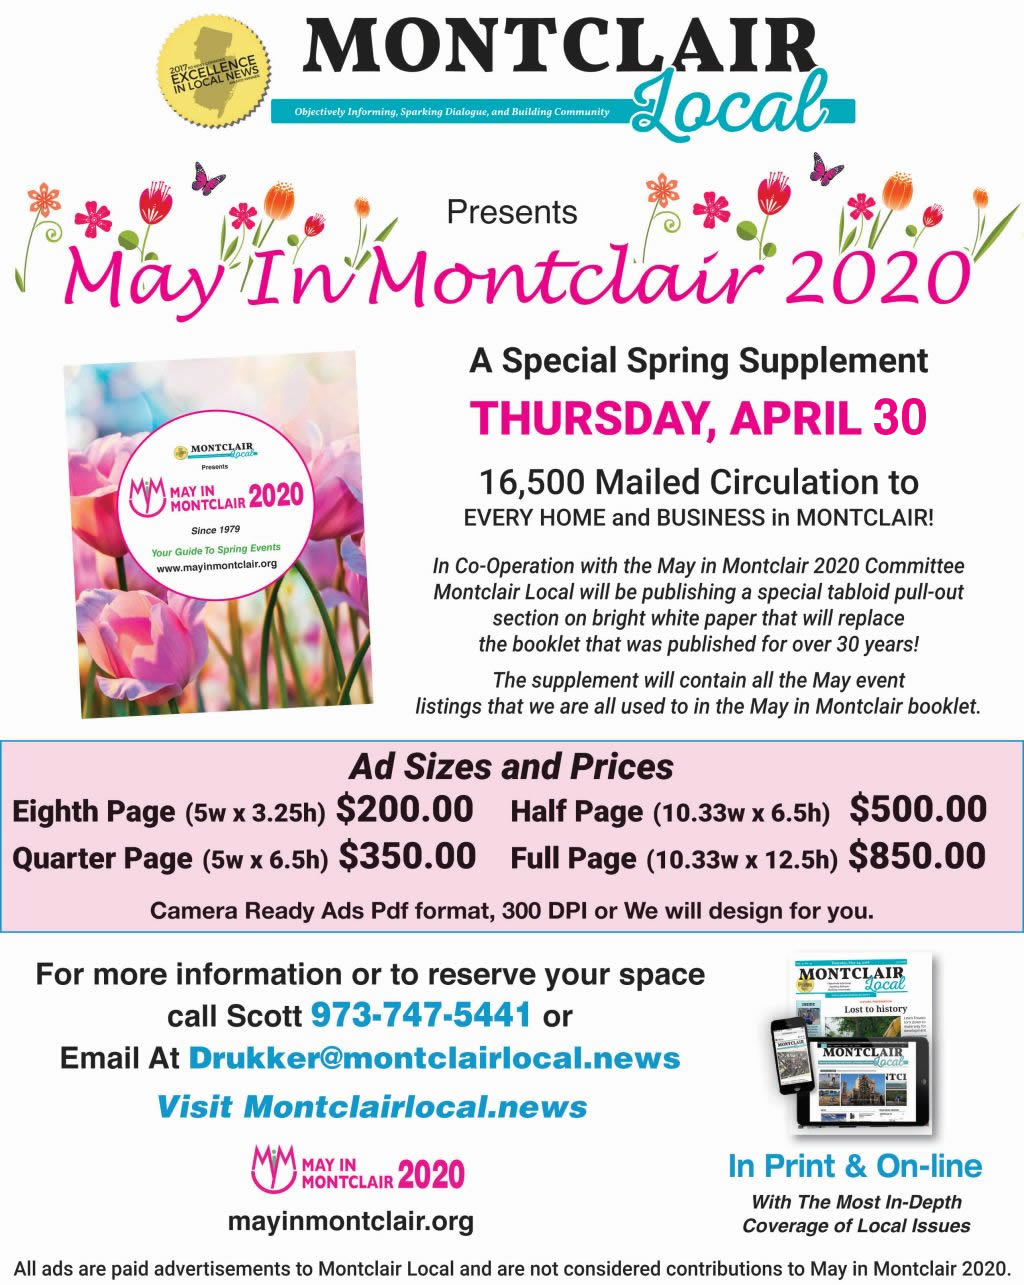 Montclair Local is printing the 2020 May in Montclair Calendar of Events. Advertise in the special supplement to reach all 16,500 households and businesses in Montclair.